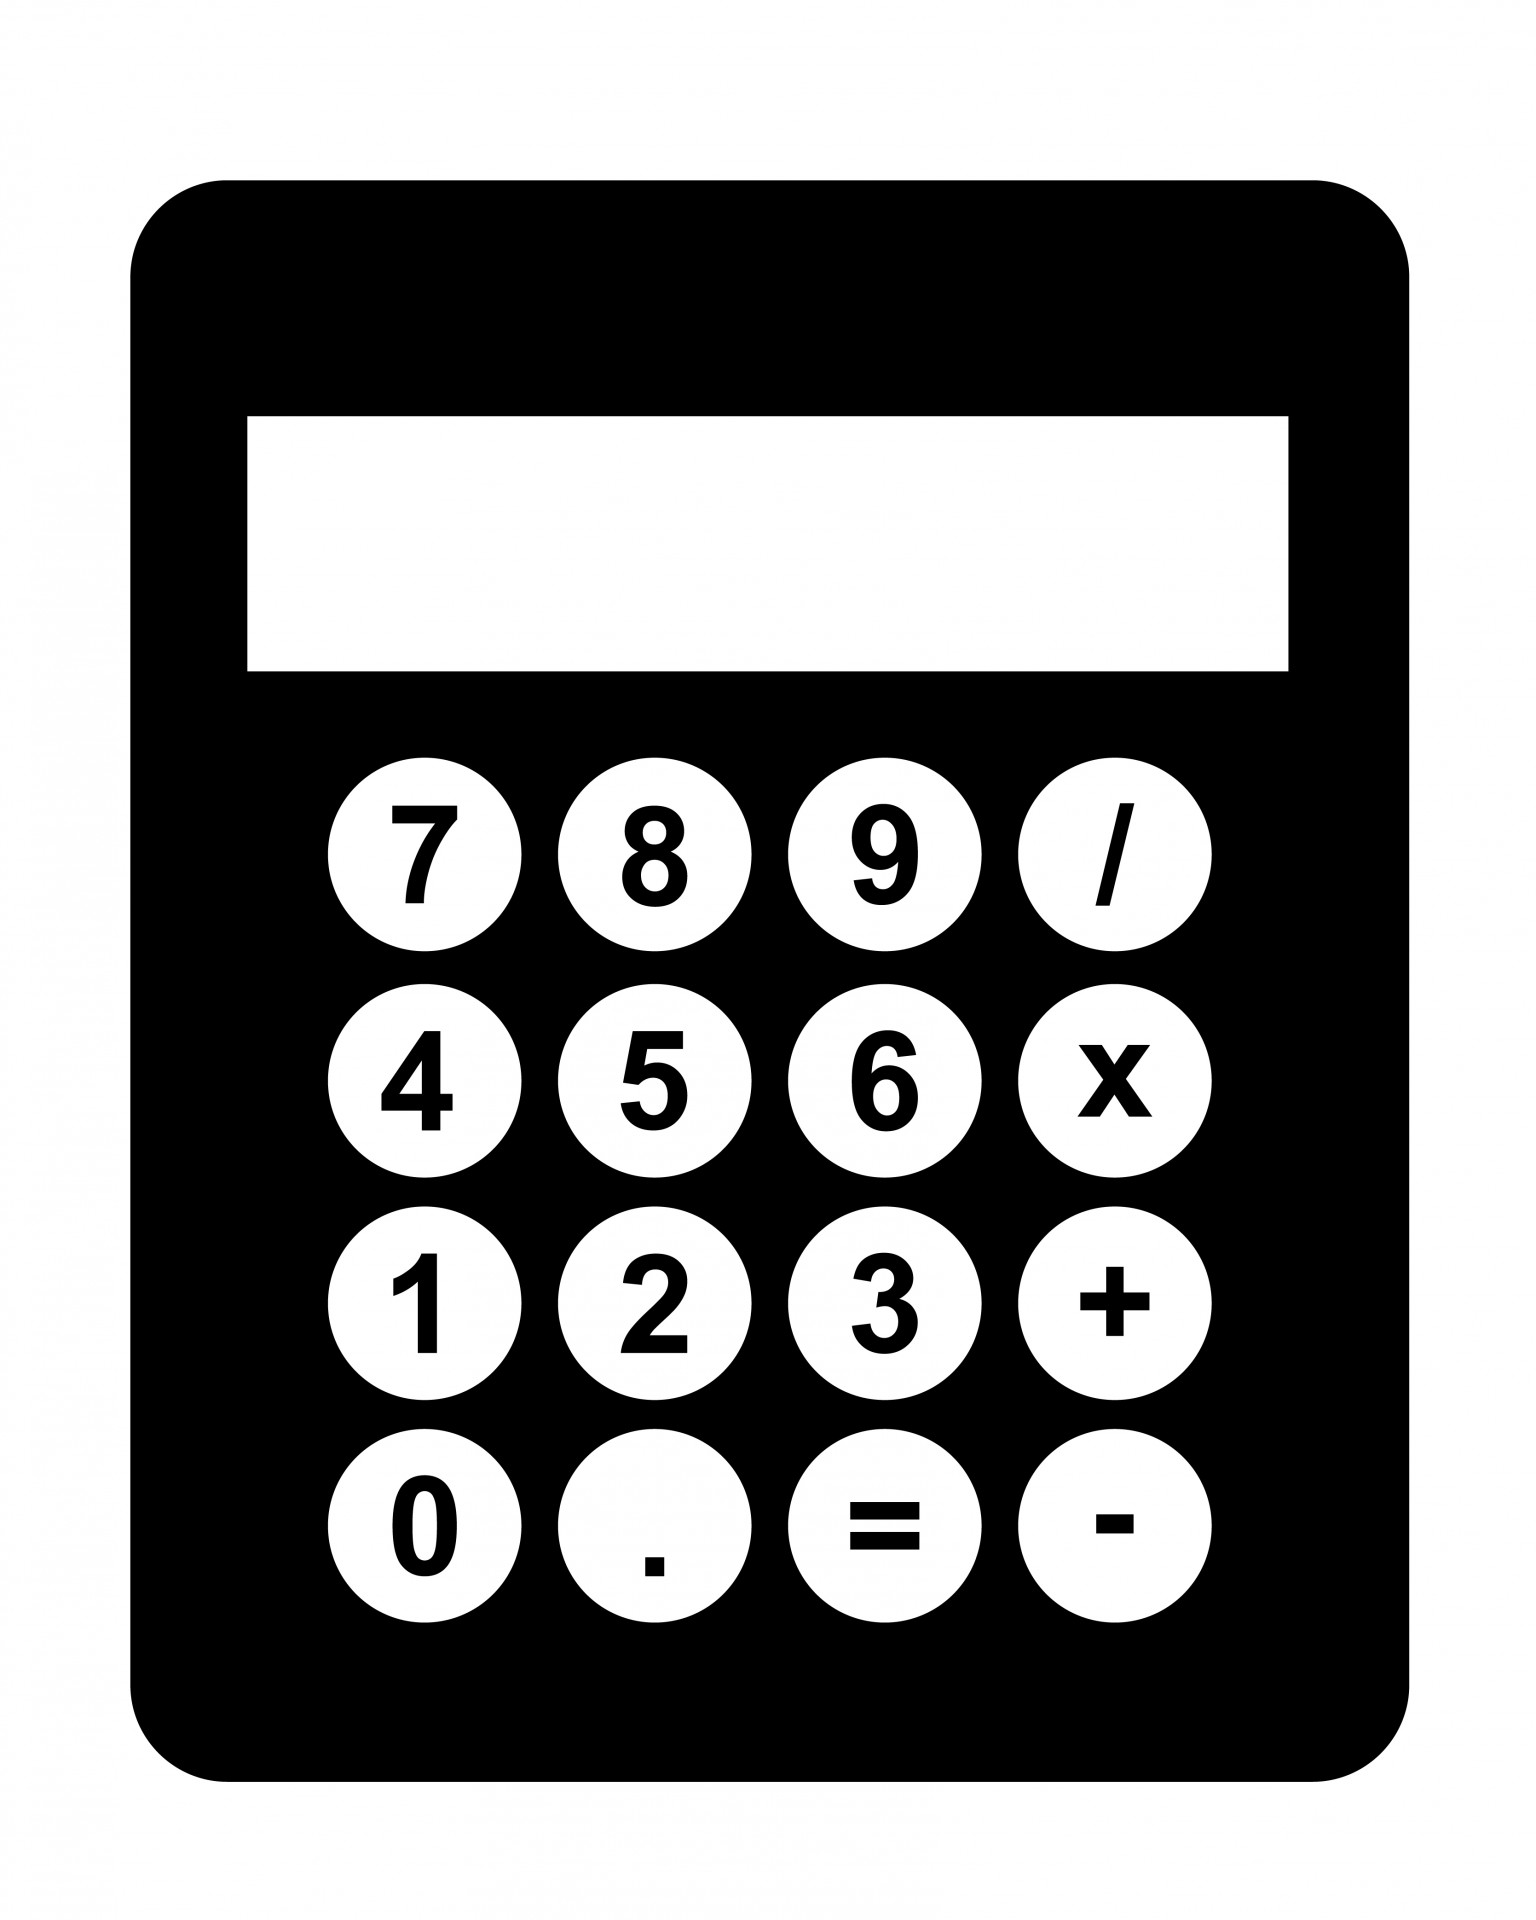 Calculator images clipart vector transparent library calculator-black-clipart – 501(c) Services vector transparent library